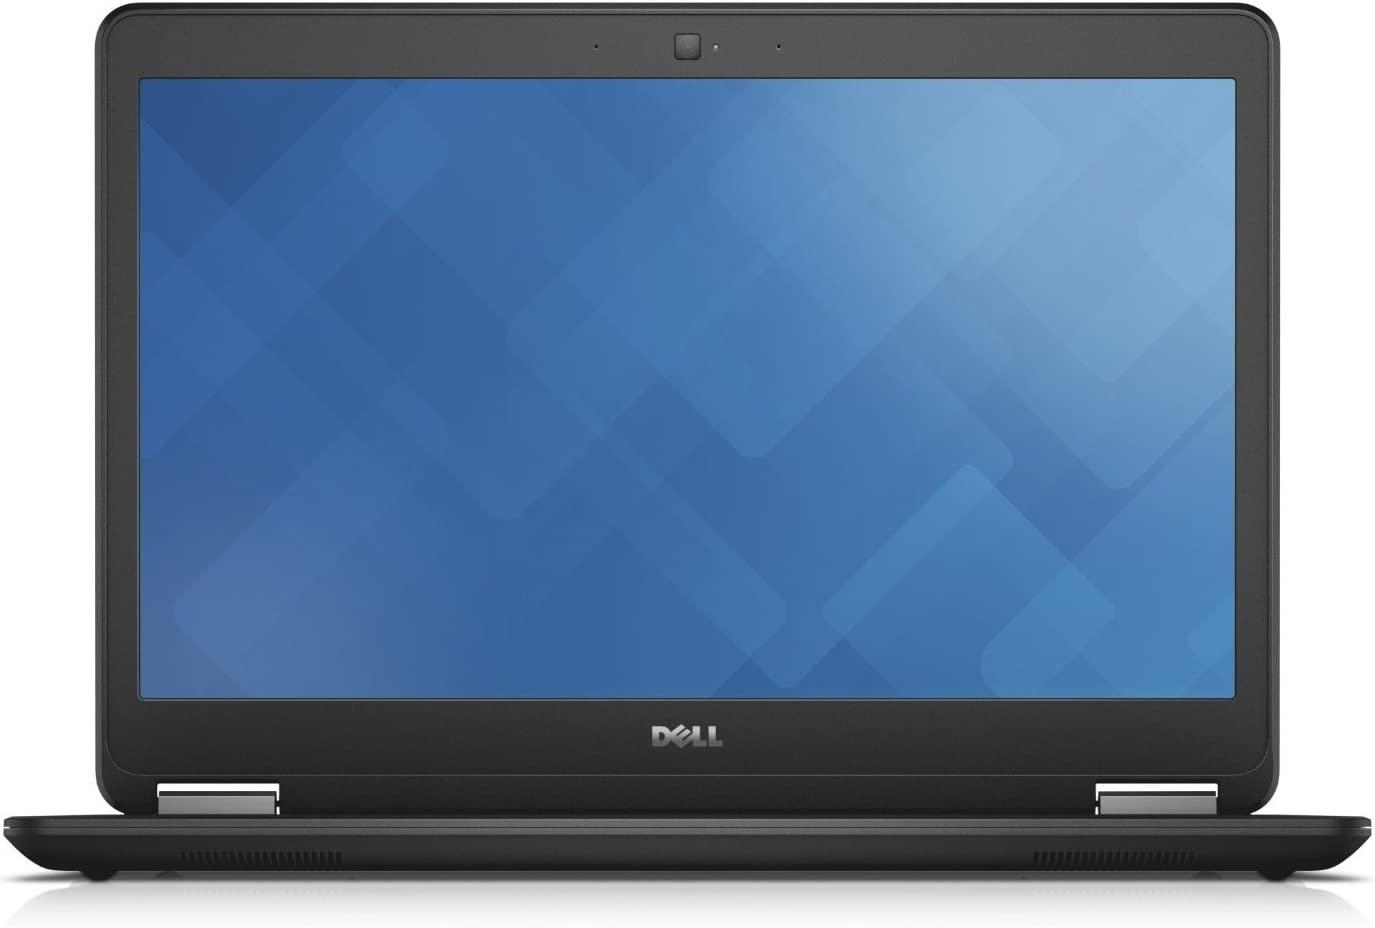 "Dell Latitude E7450 14"" Ultrabook, Full-HD Display, Intel Core i5-5200u 2.3GHz, 256GB SSD, 8GB DDR3, 802.11ac, Bluetooth, Windows 7 Professional"